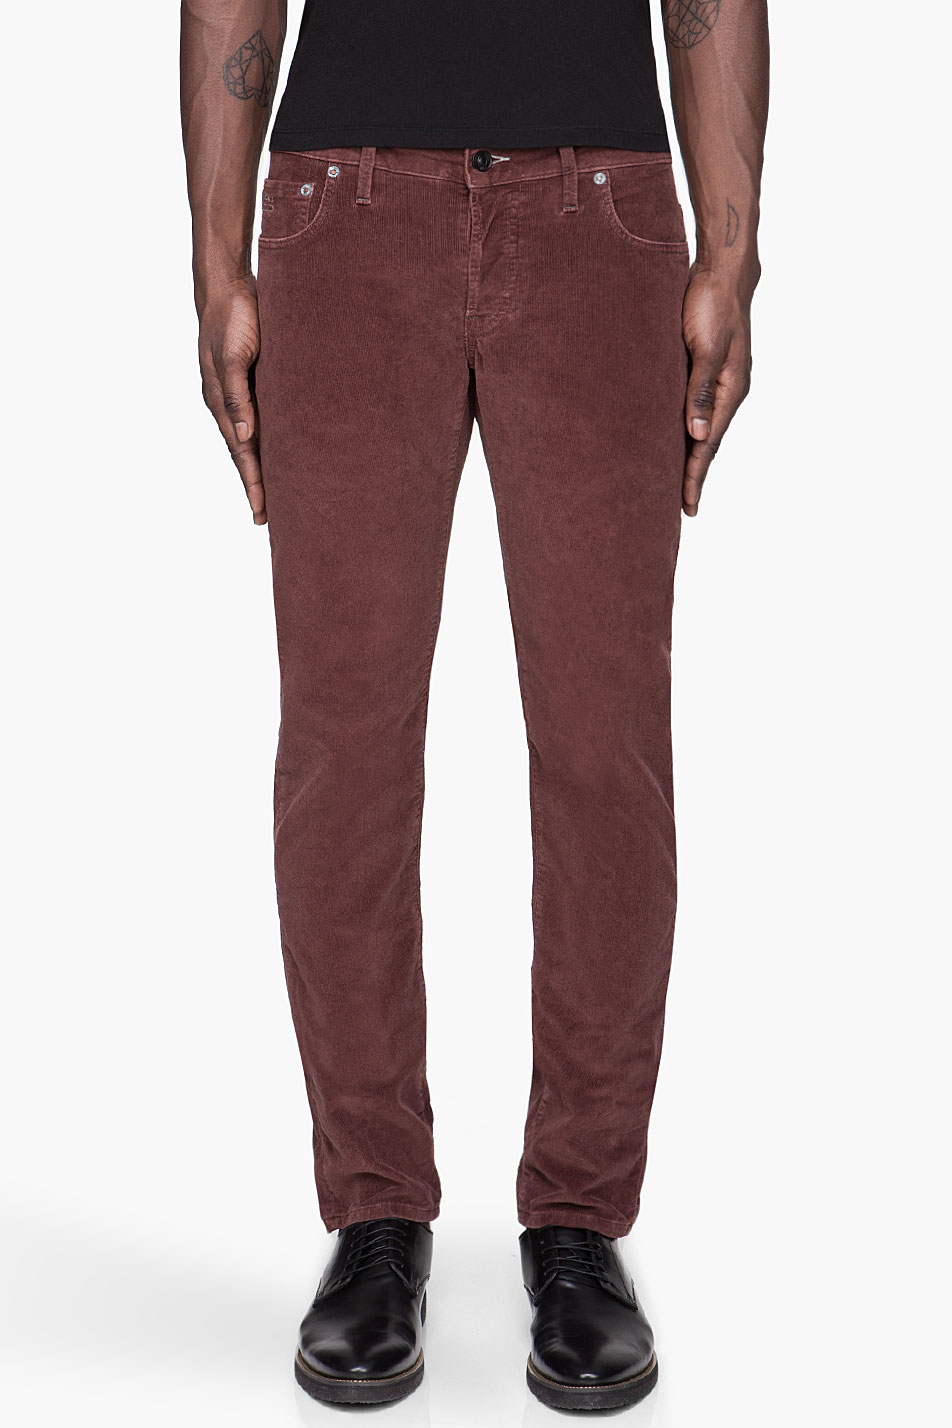 G Star Raw Tapered Corduroy Jeans In Purple For Men Plum